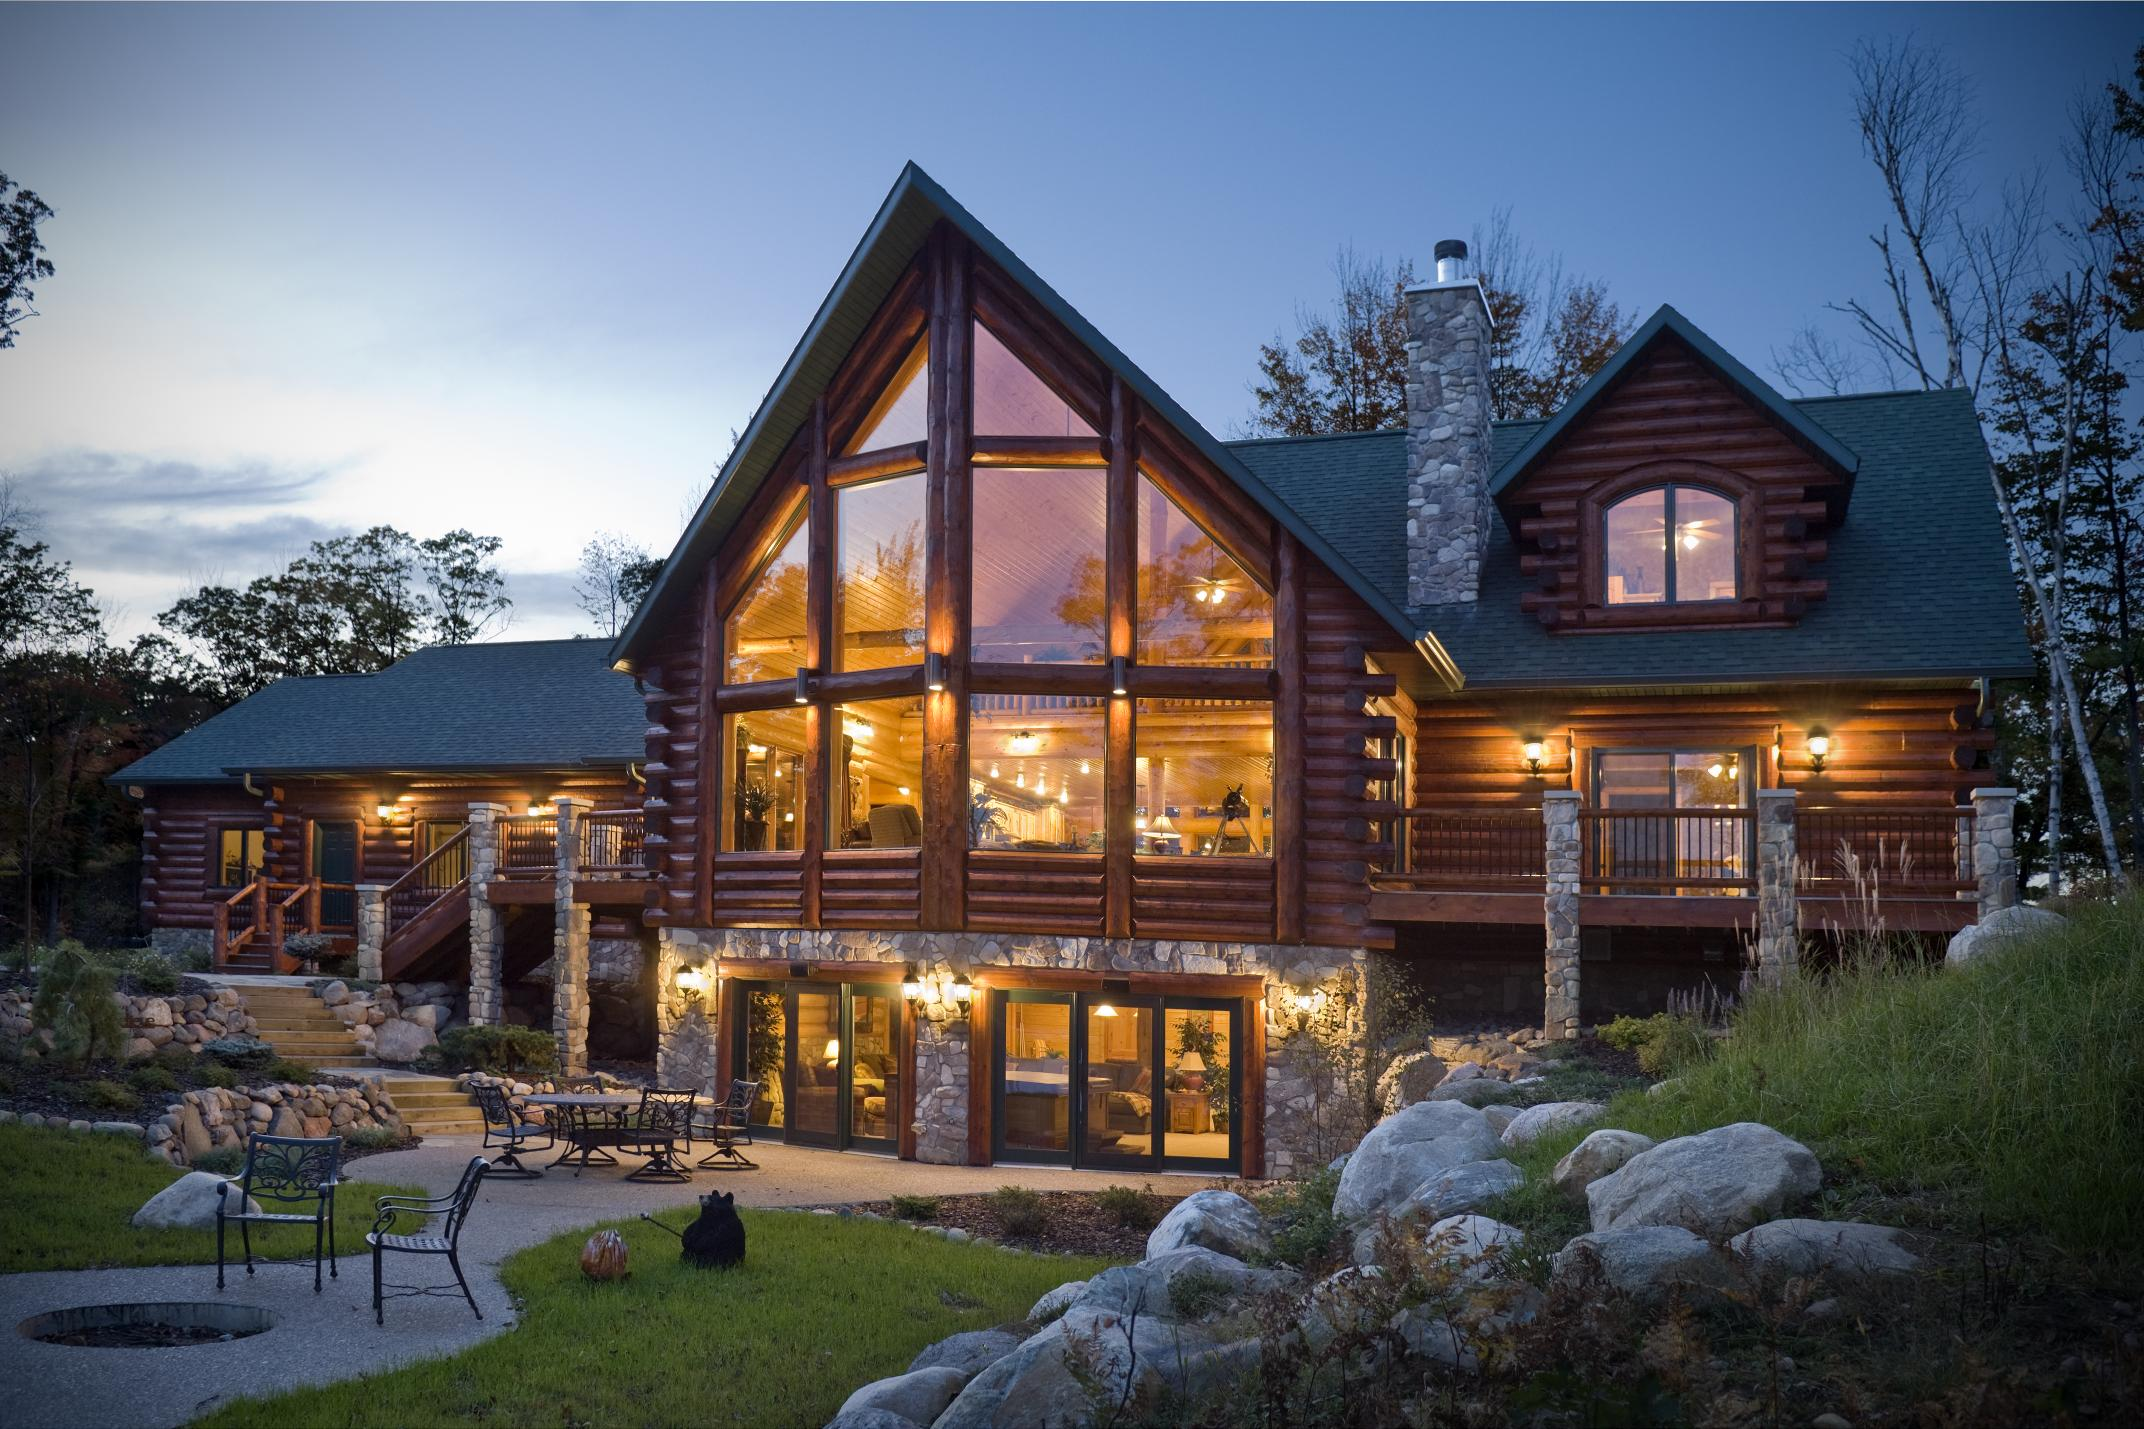 Sashco log home products and golden eagle log homes expand for Huge home plans